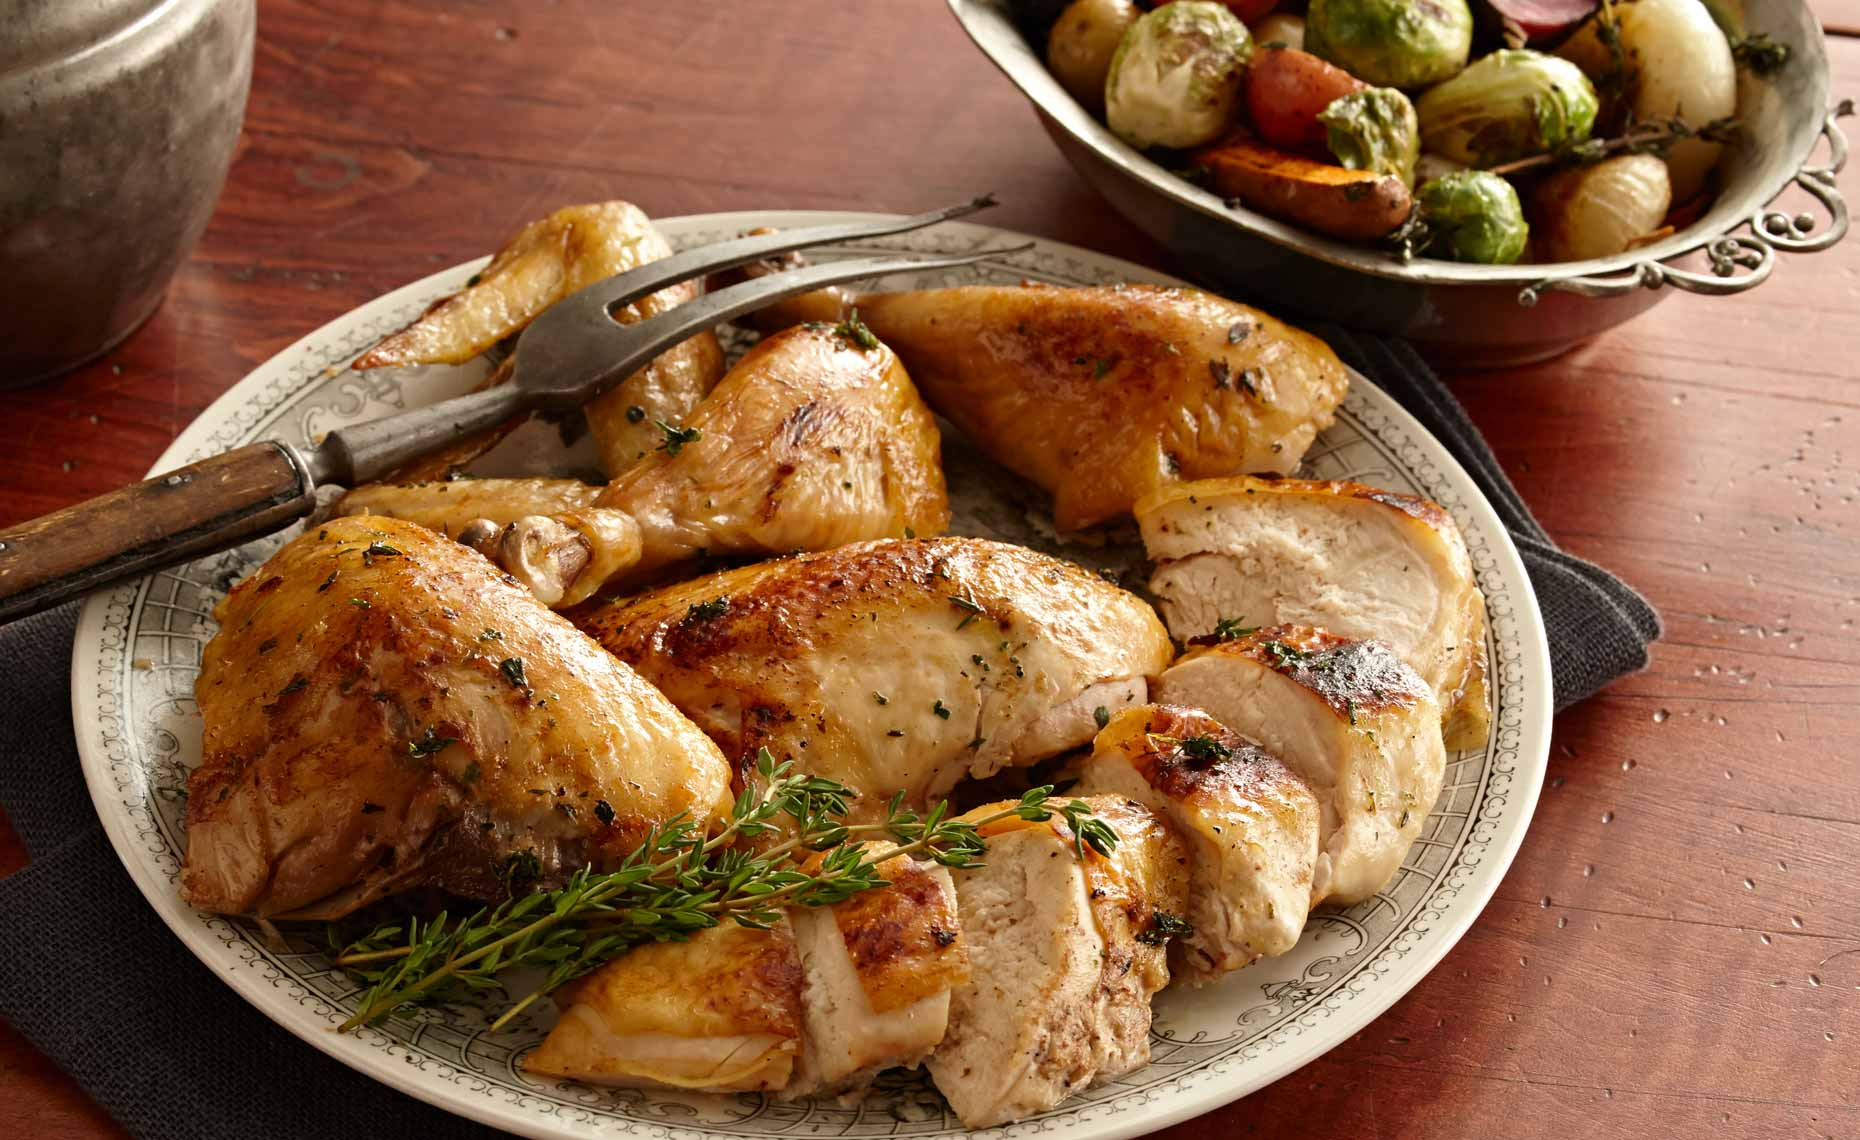 maryland-food-photographers-chicken-roasted-08